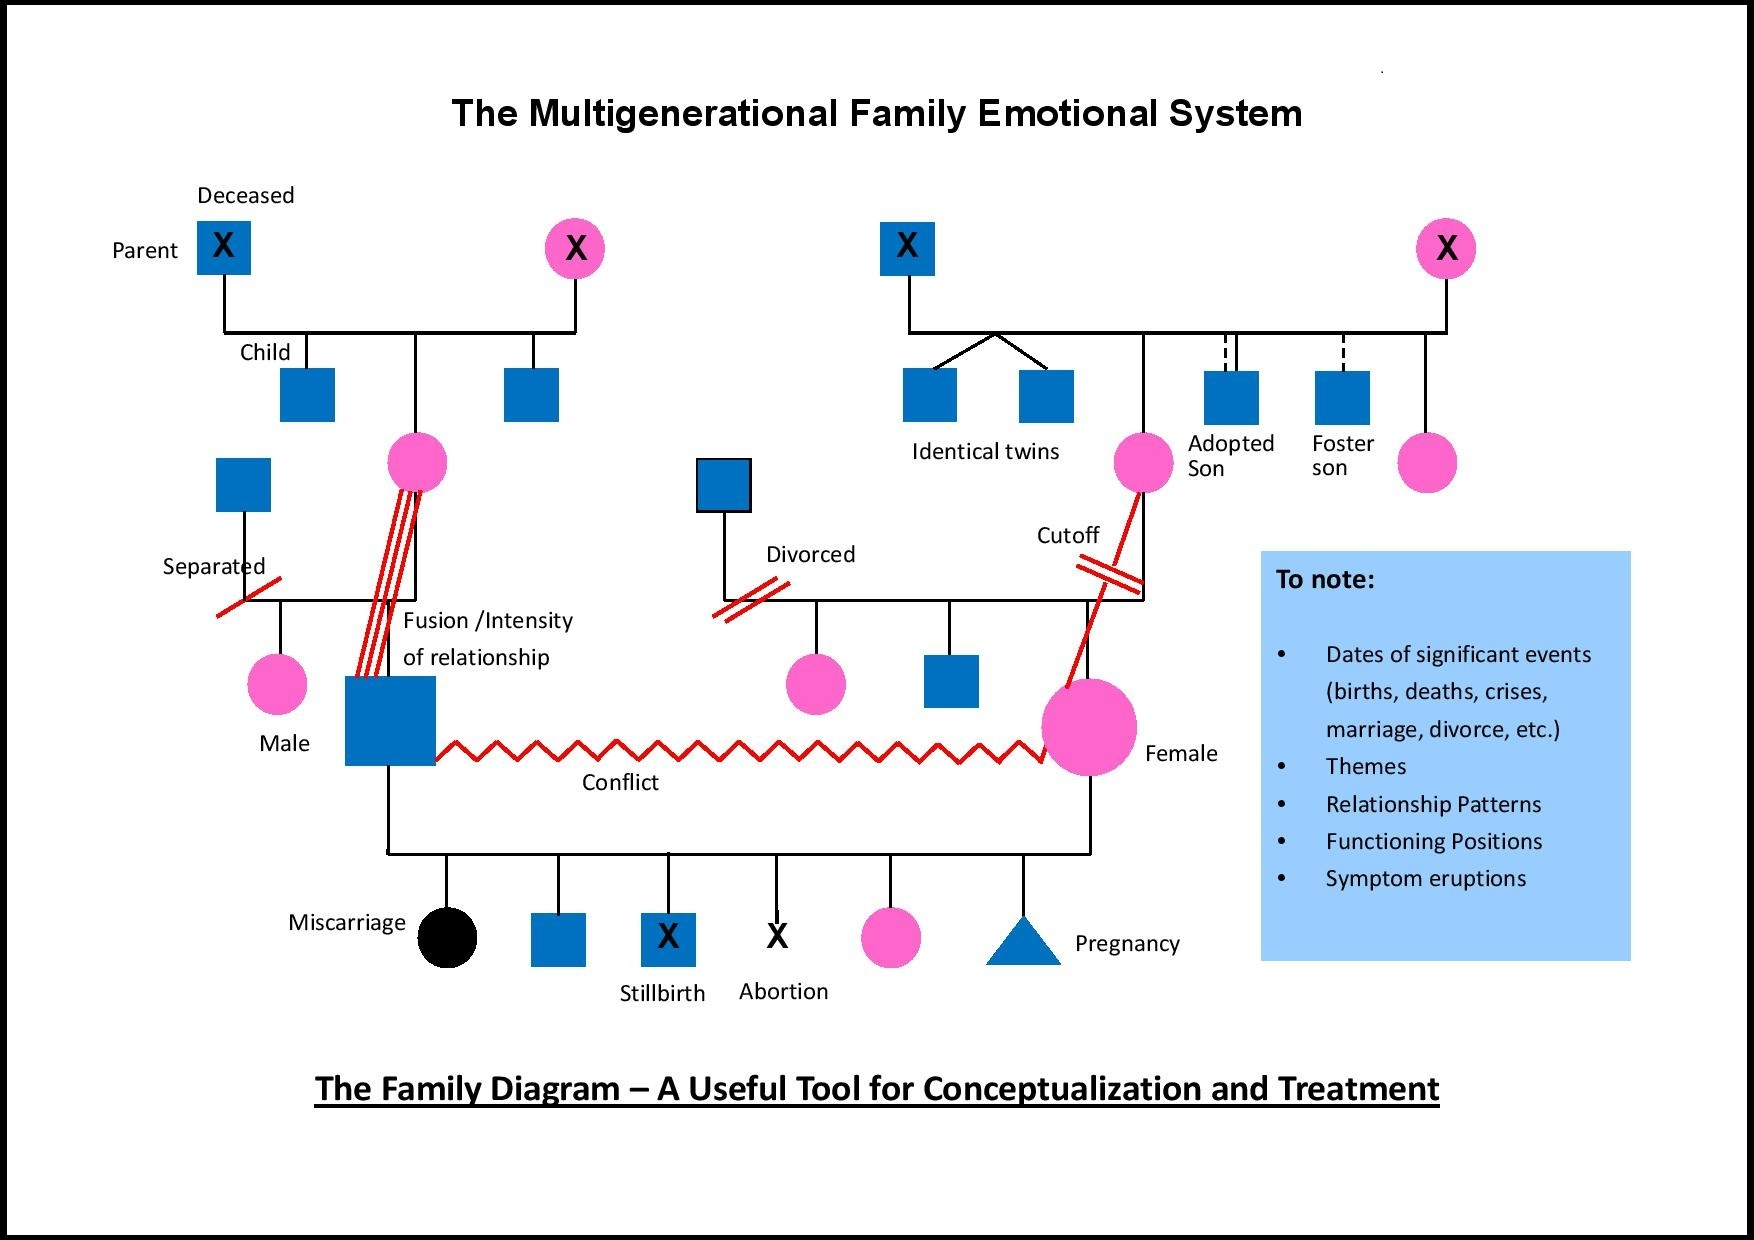 Self Photos / Files - The_Multigenerational_Family_Emotional_System_Eng_framed